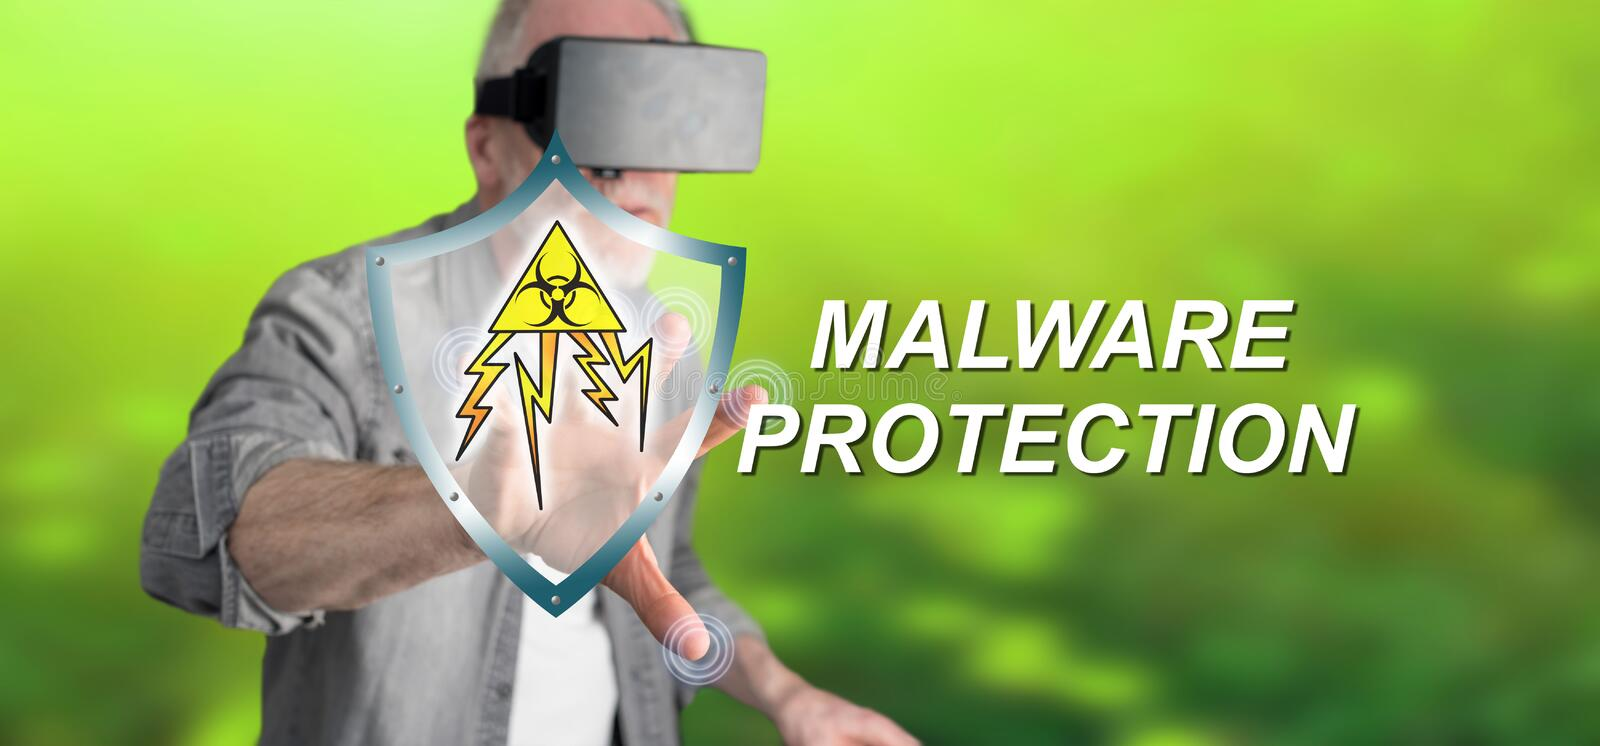 5 040 Malware Protection Photos Free Royalty Free Stock Photos From Dreamstime